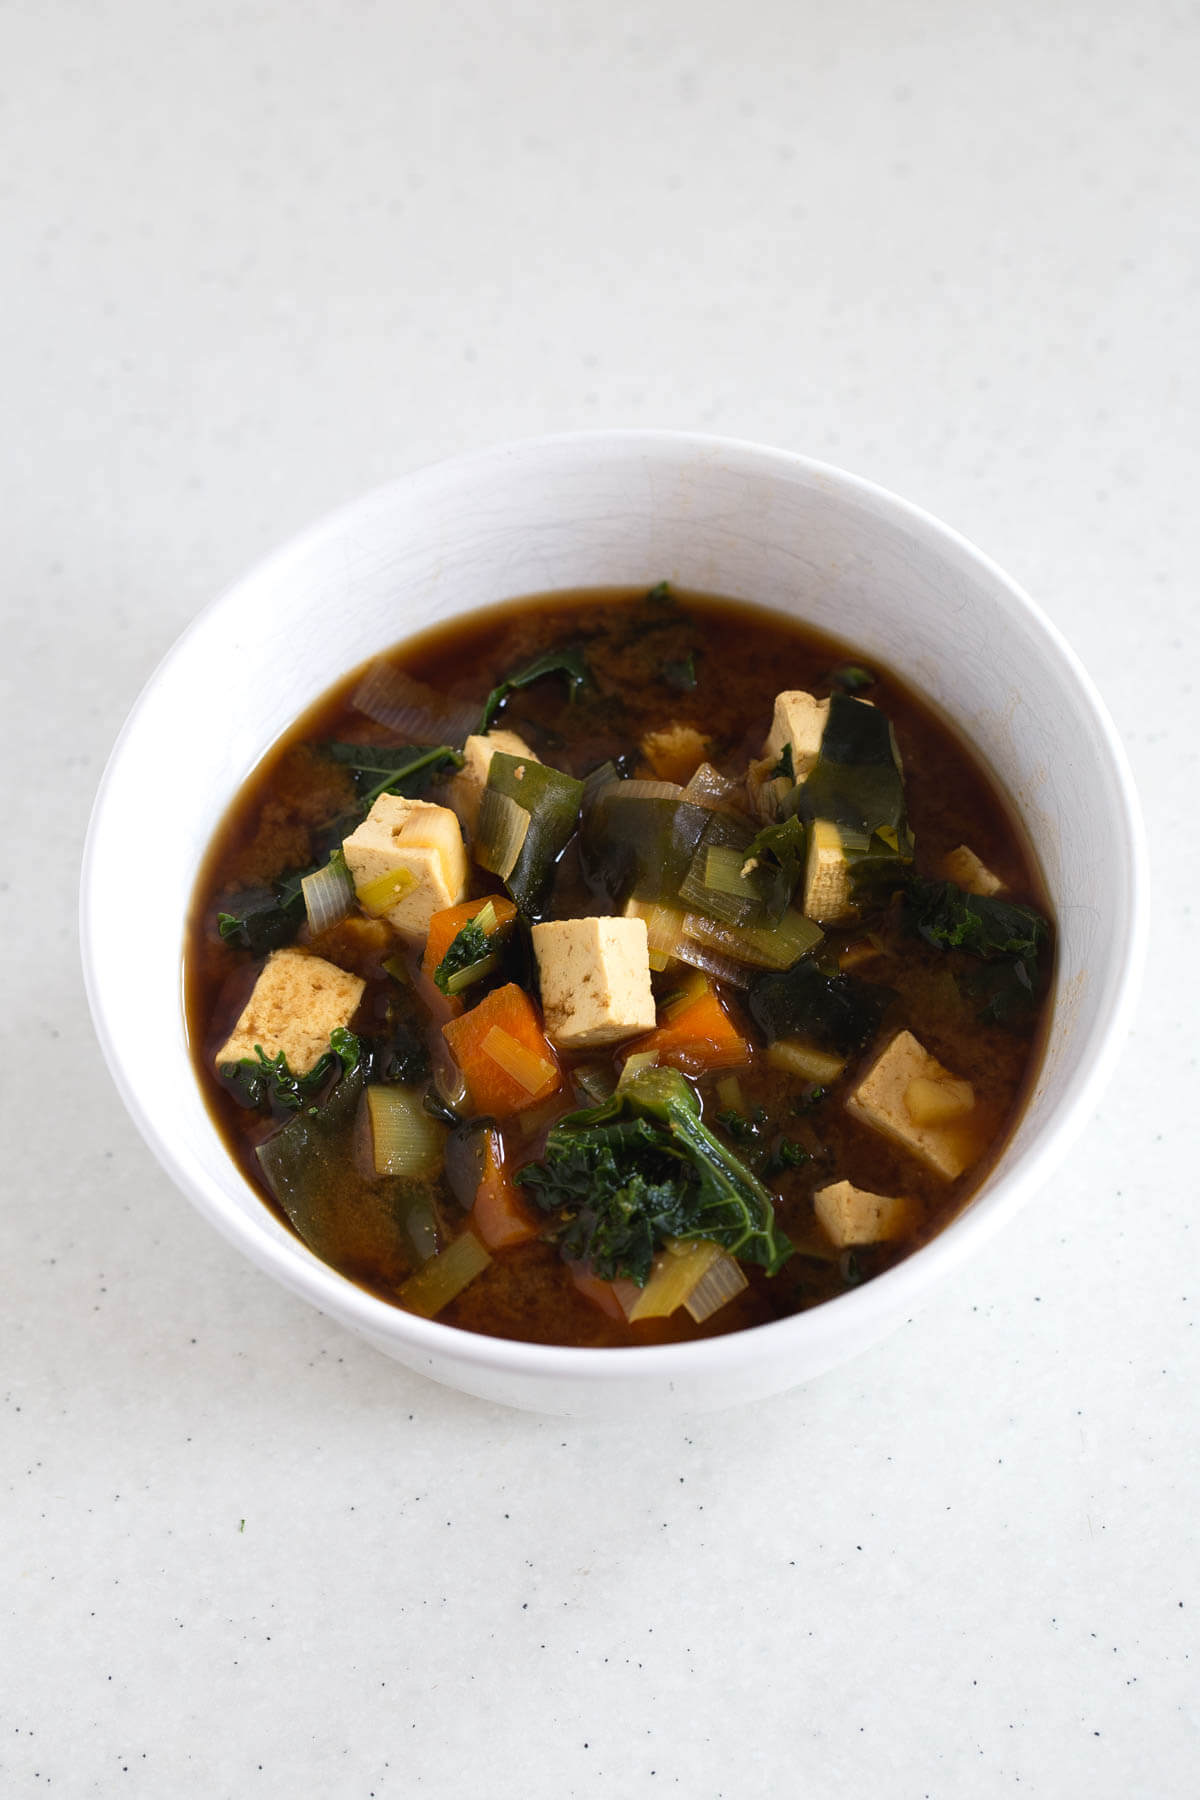 Vegan Miso Soup With Tofu and Kale: Miso soup is one of our favourites and the one we prepare the most at home. It is ready in 15 minutes and is very nutritious.